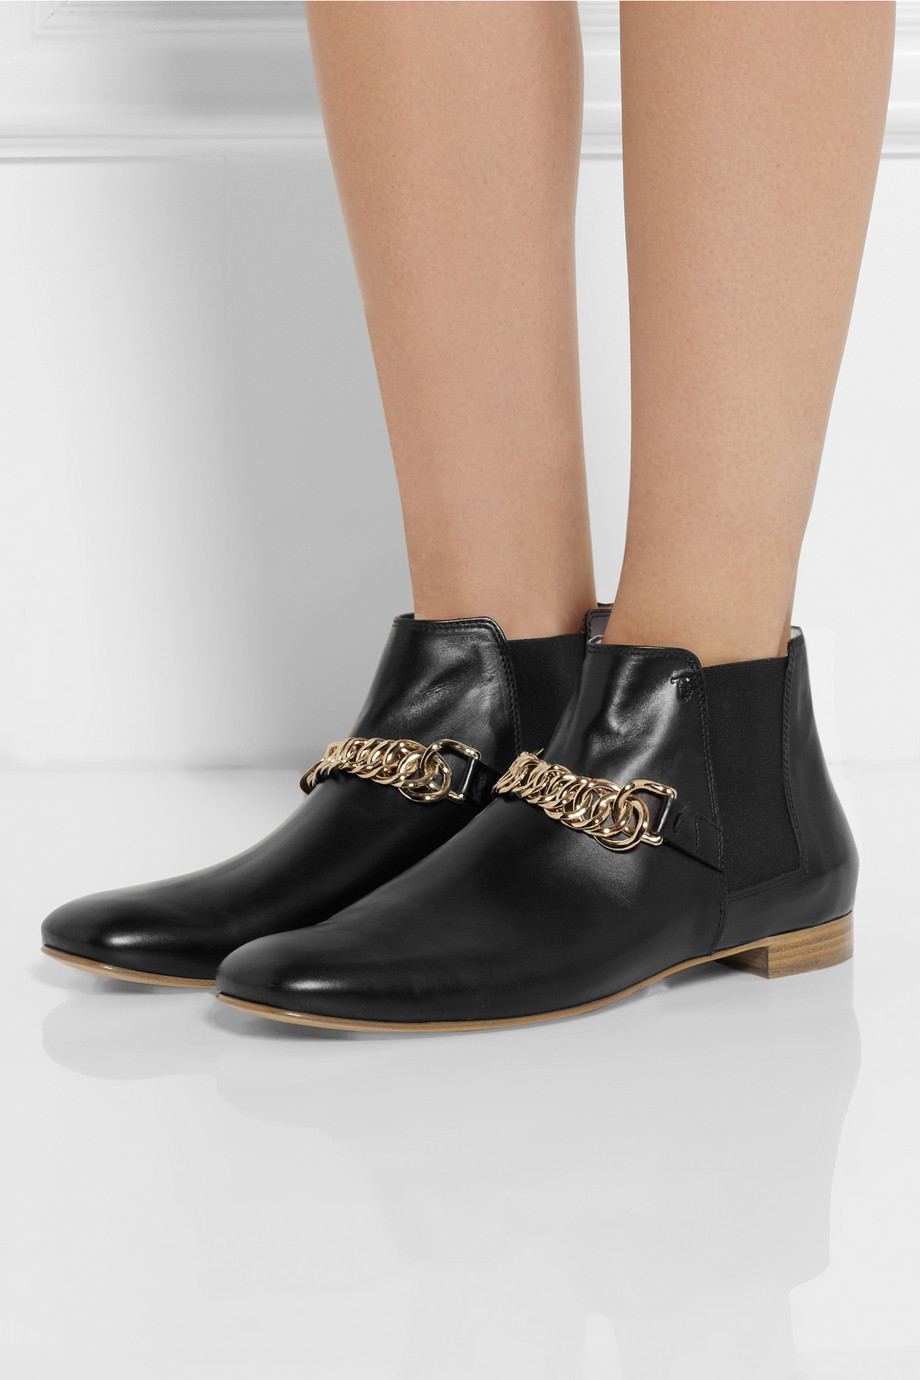 Tod's Chain-Trimmed Leather Chelsea Boots in Black